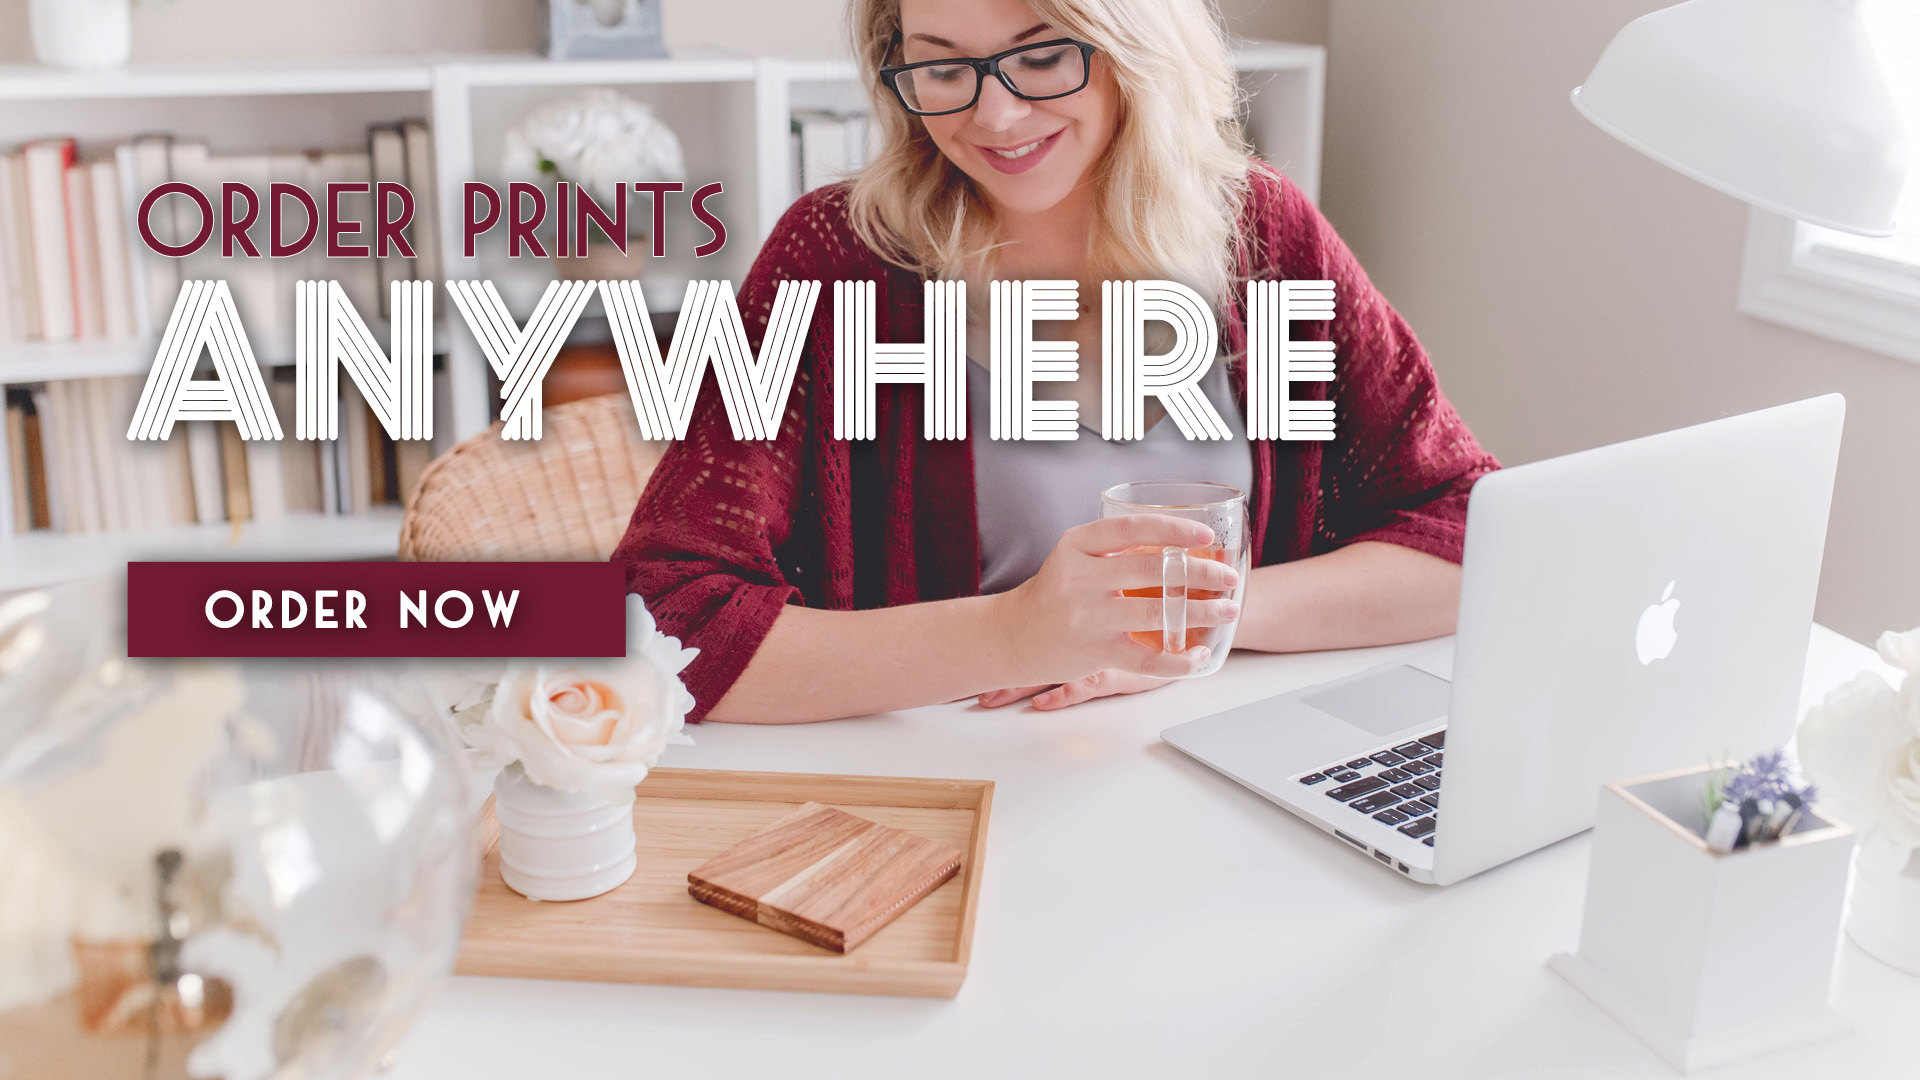 Order Prints Anywhere